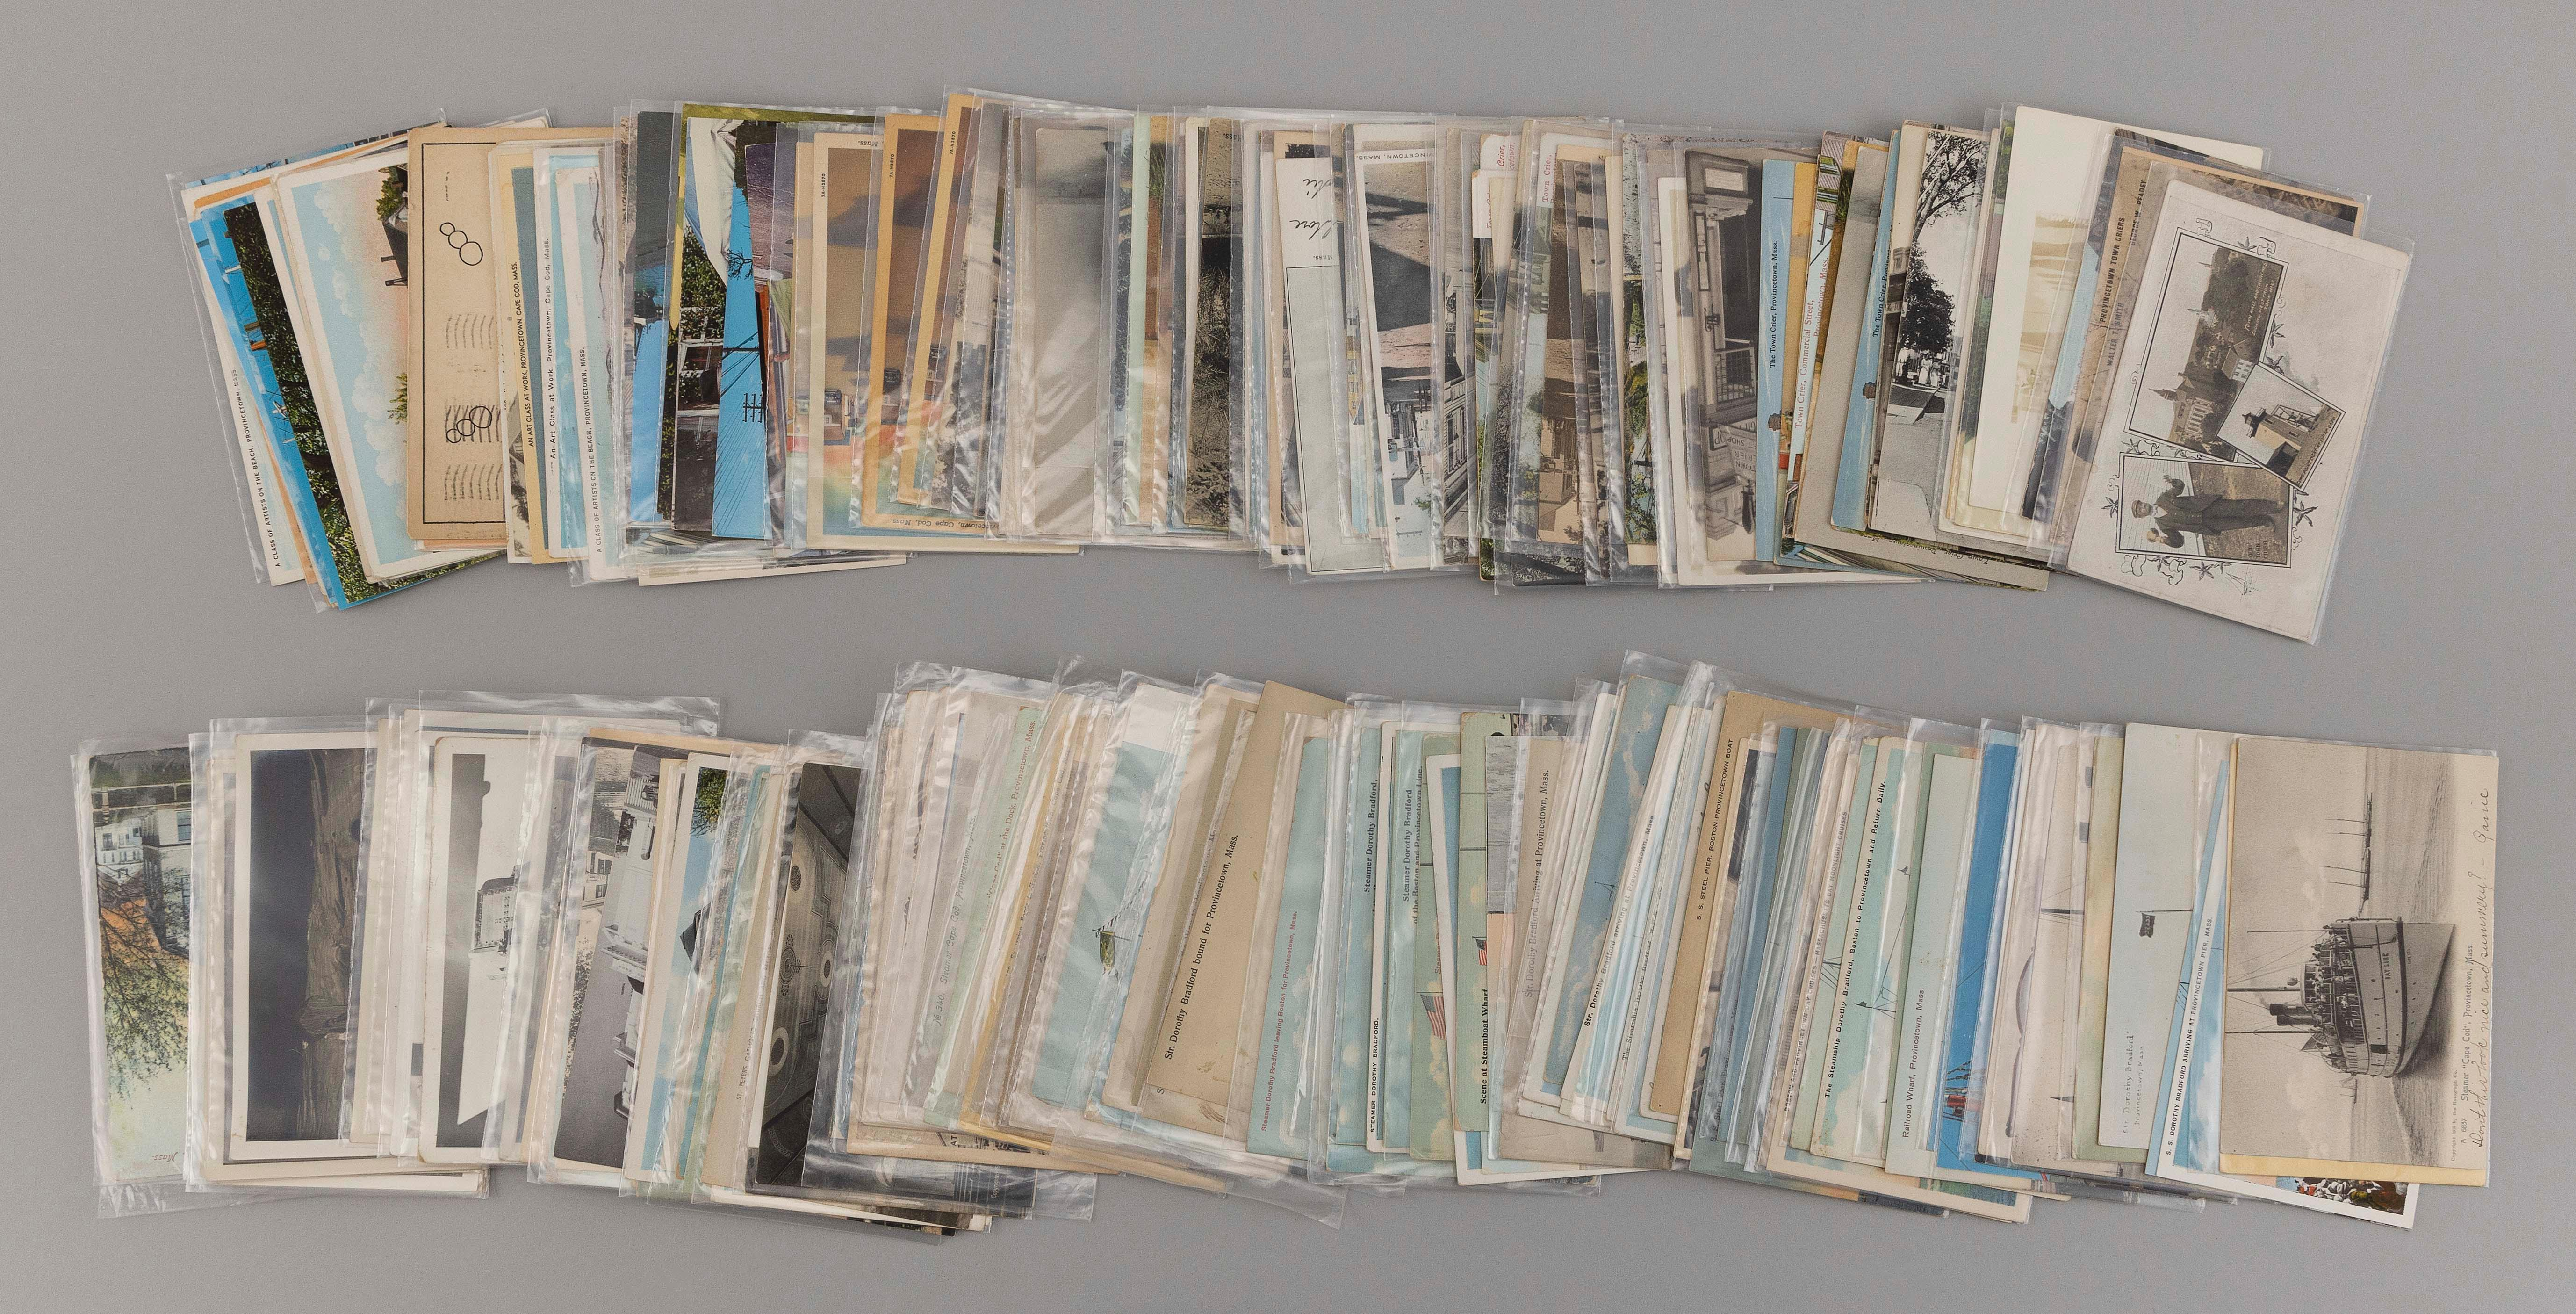 (CAPE COD: PROVINCETOWN) 206 POSTCARDS Includes 28 Artists, 75 town crier, 64 Boston boats and ferries and 39 churches. Of note: two...